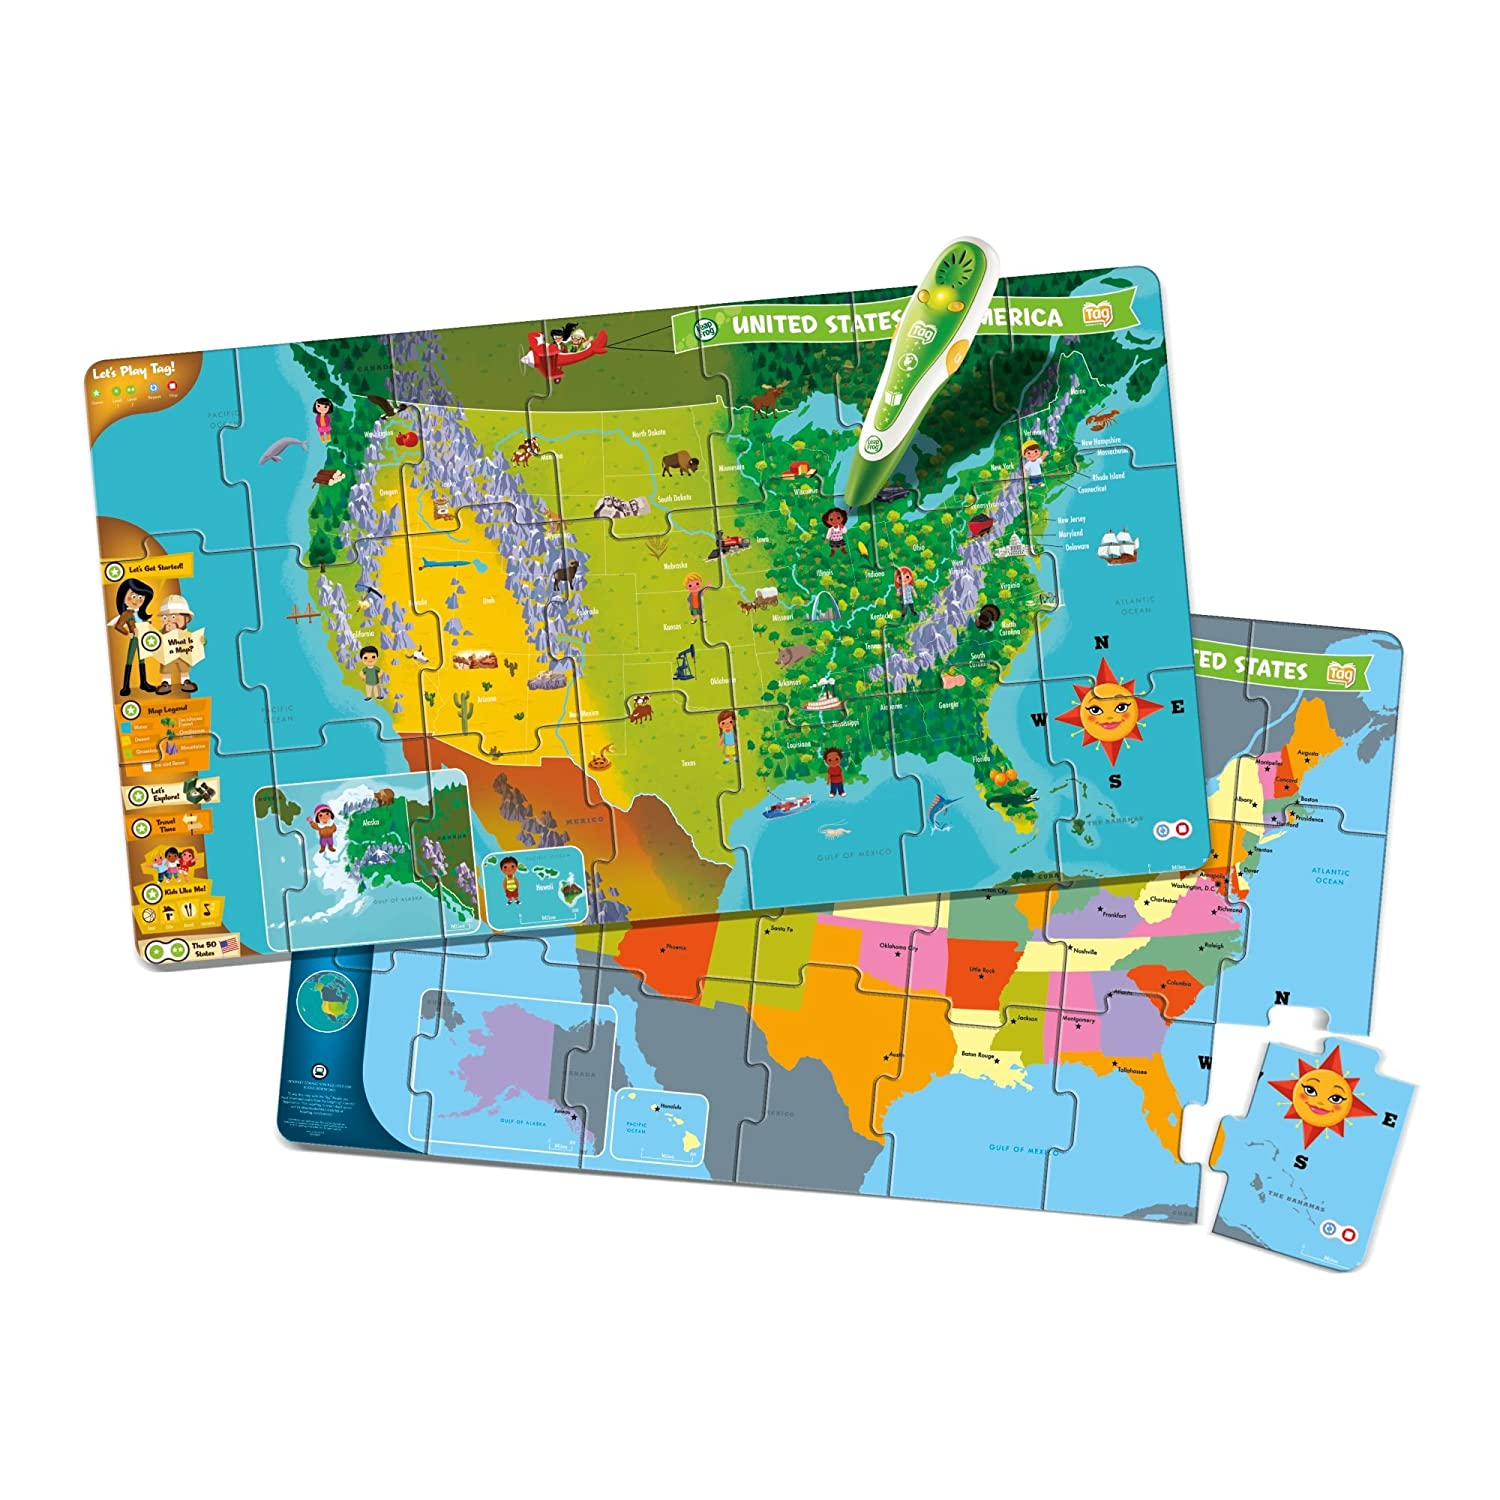 Amazon leapfrog leapreader interactive united states map amazon leapfrog leapreader interactive united states map puzzle works with tag toys games gumiabroncs Gallery